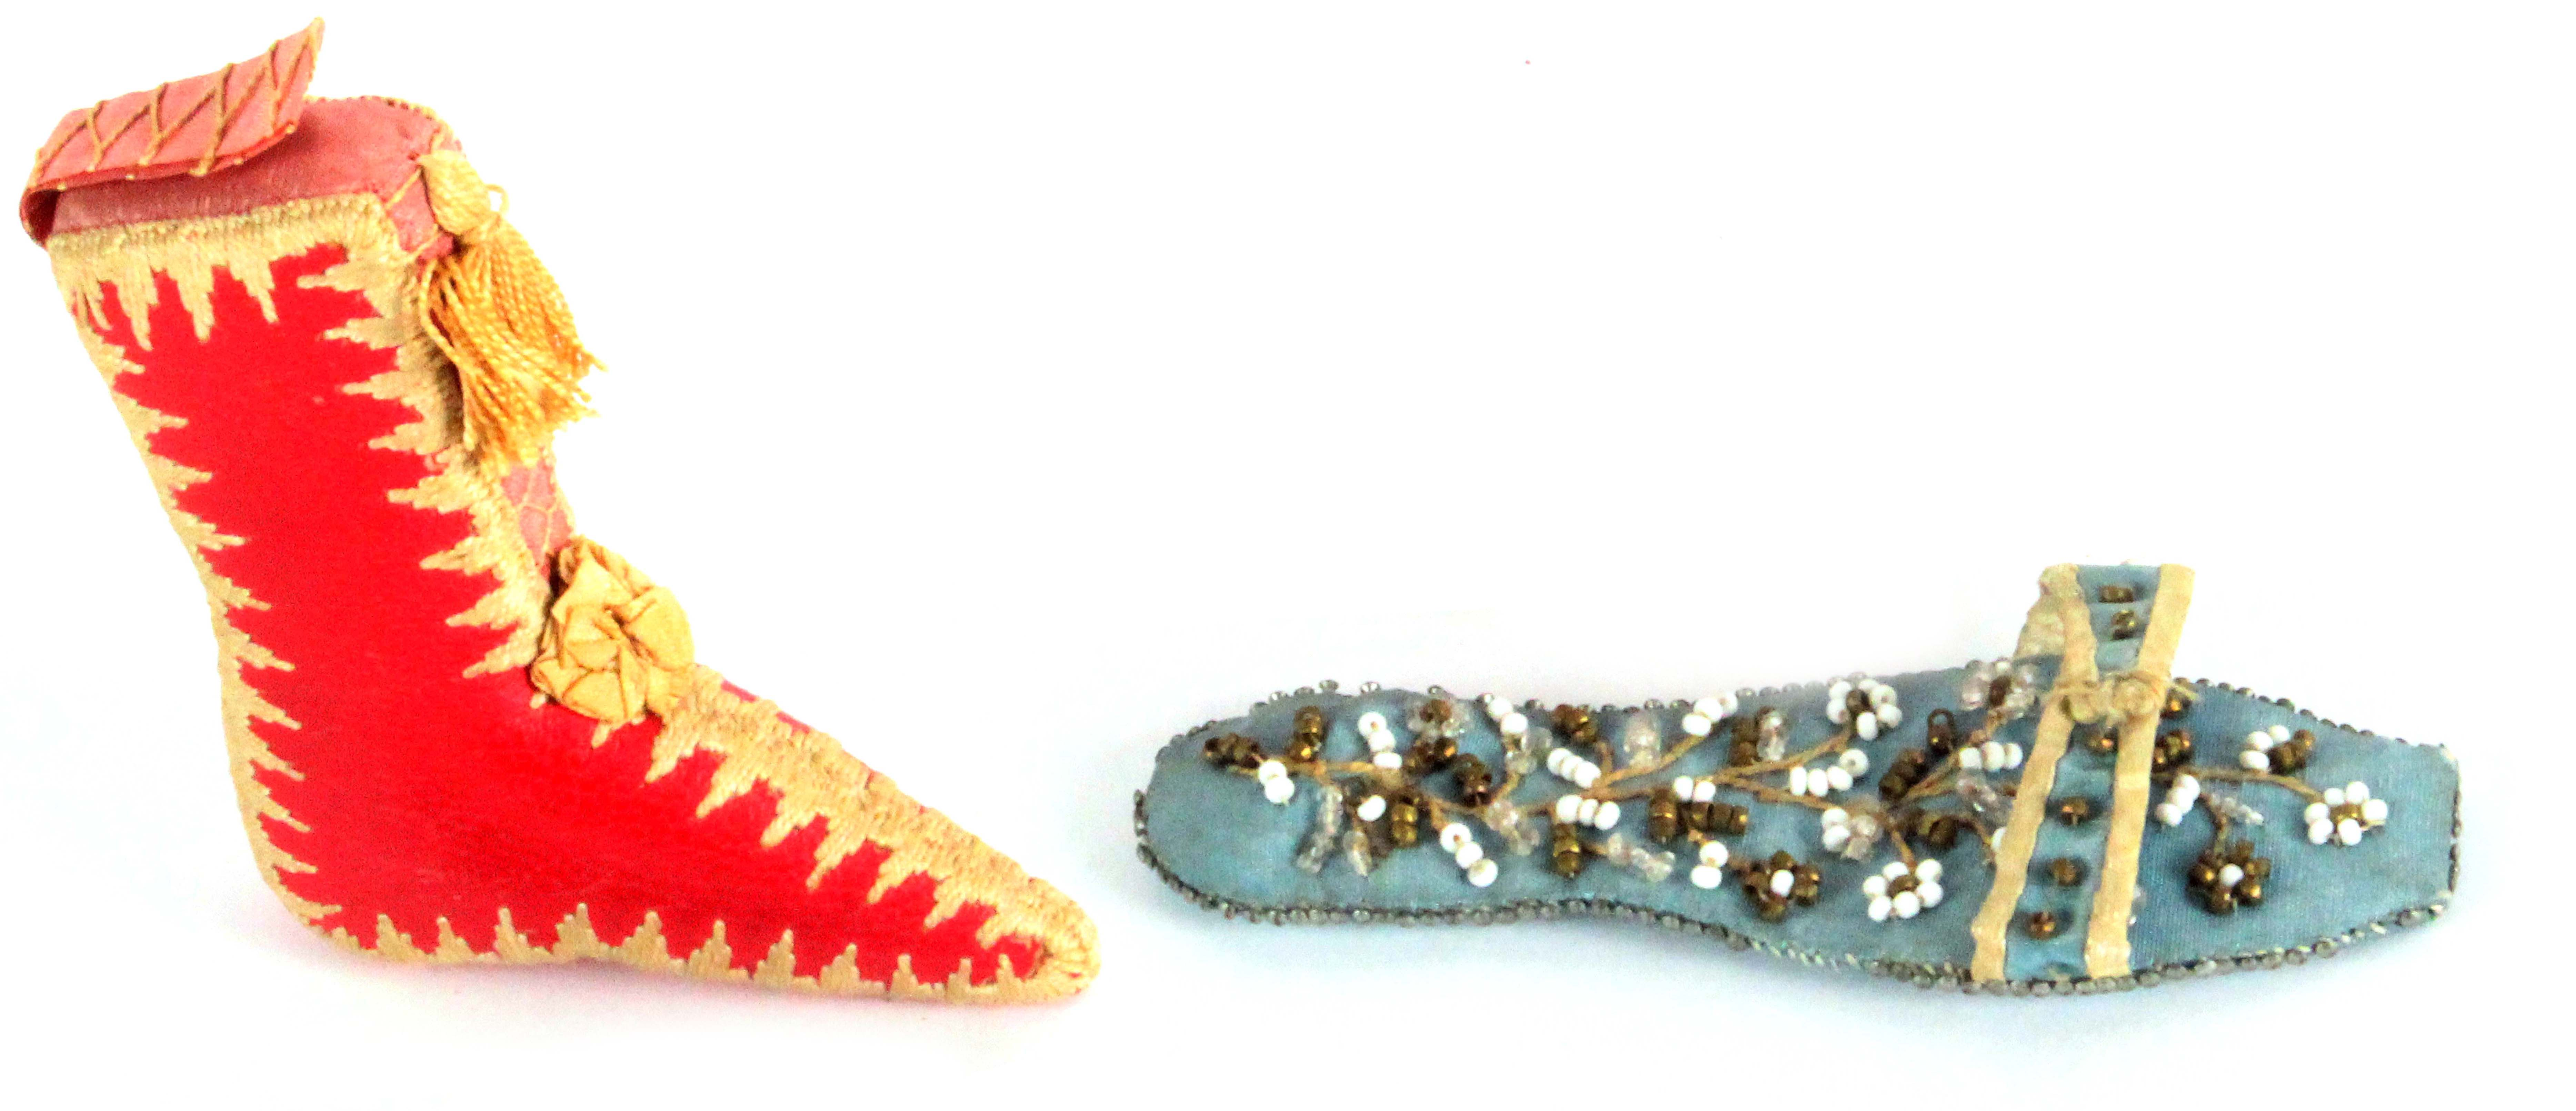 A lady's boot pin cushion and a beadwork sandal, the first in red leather with elaborate stitched